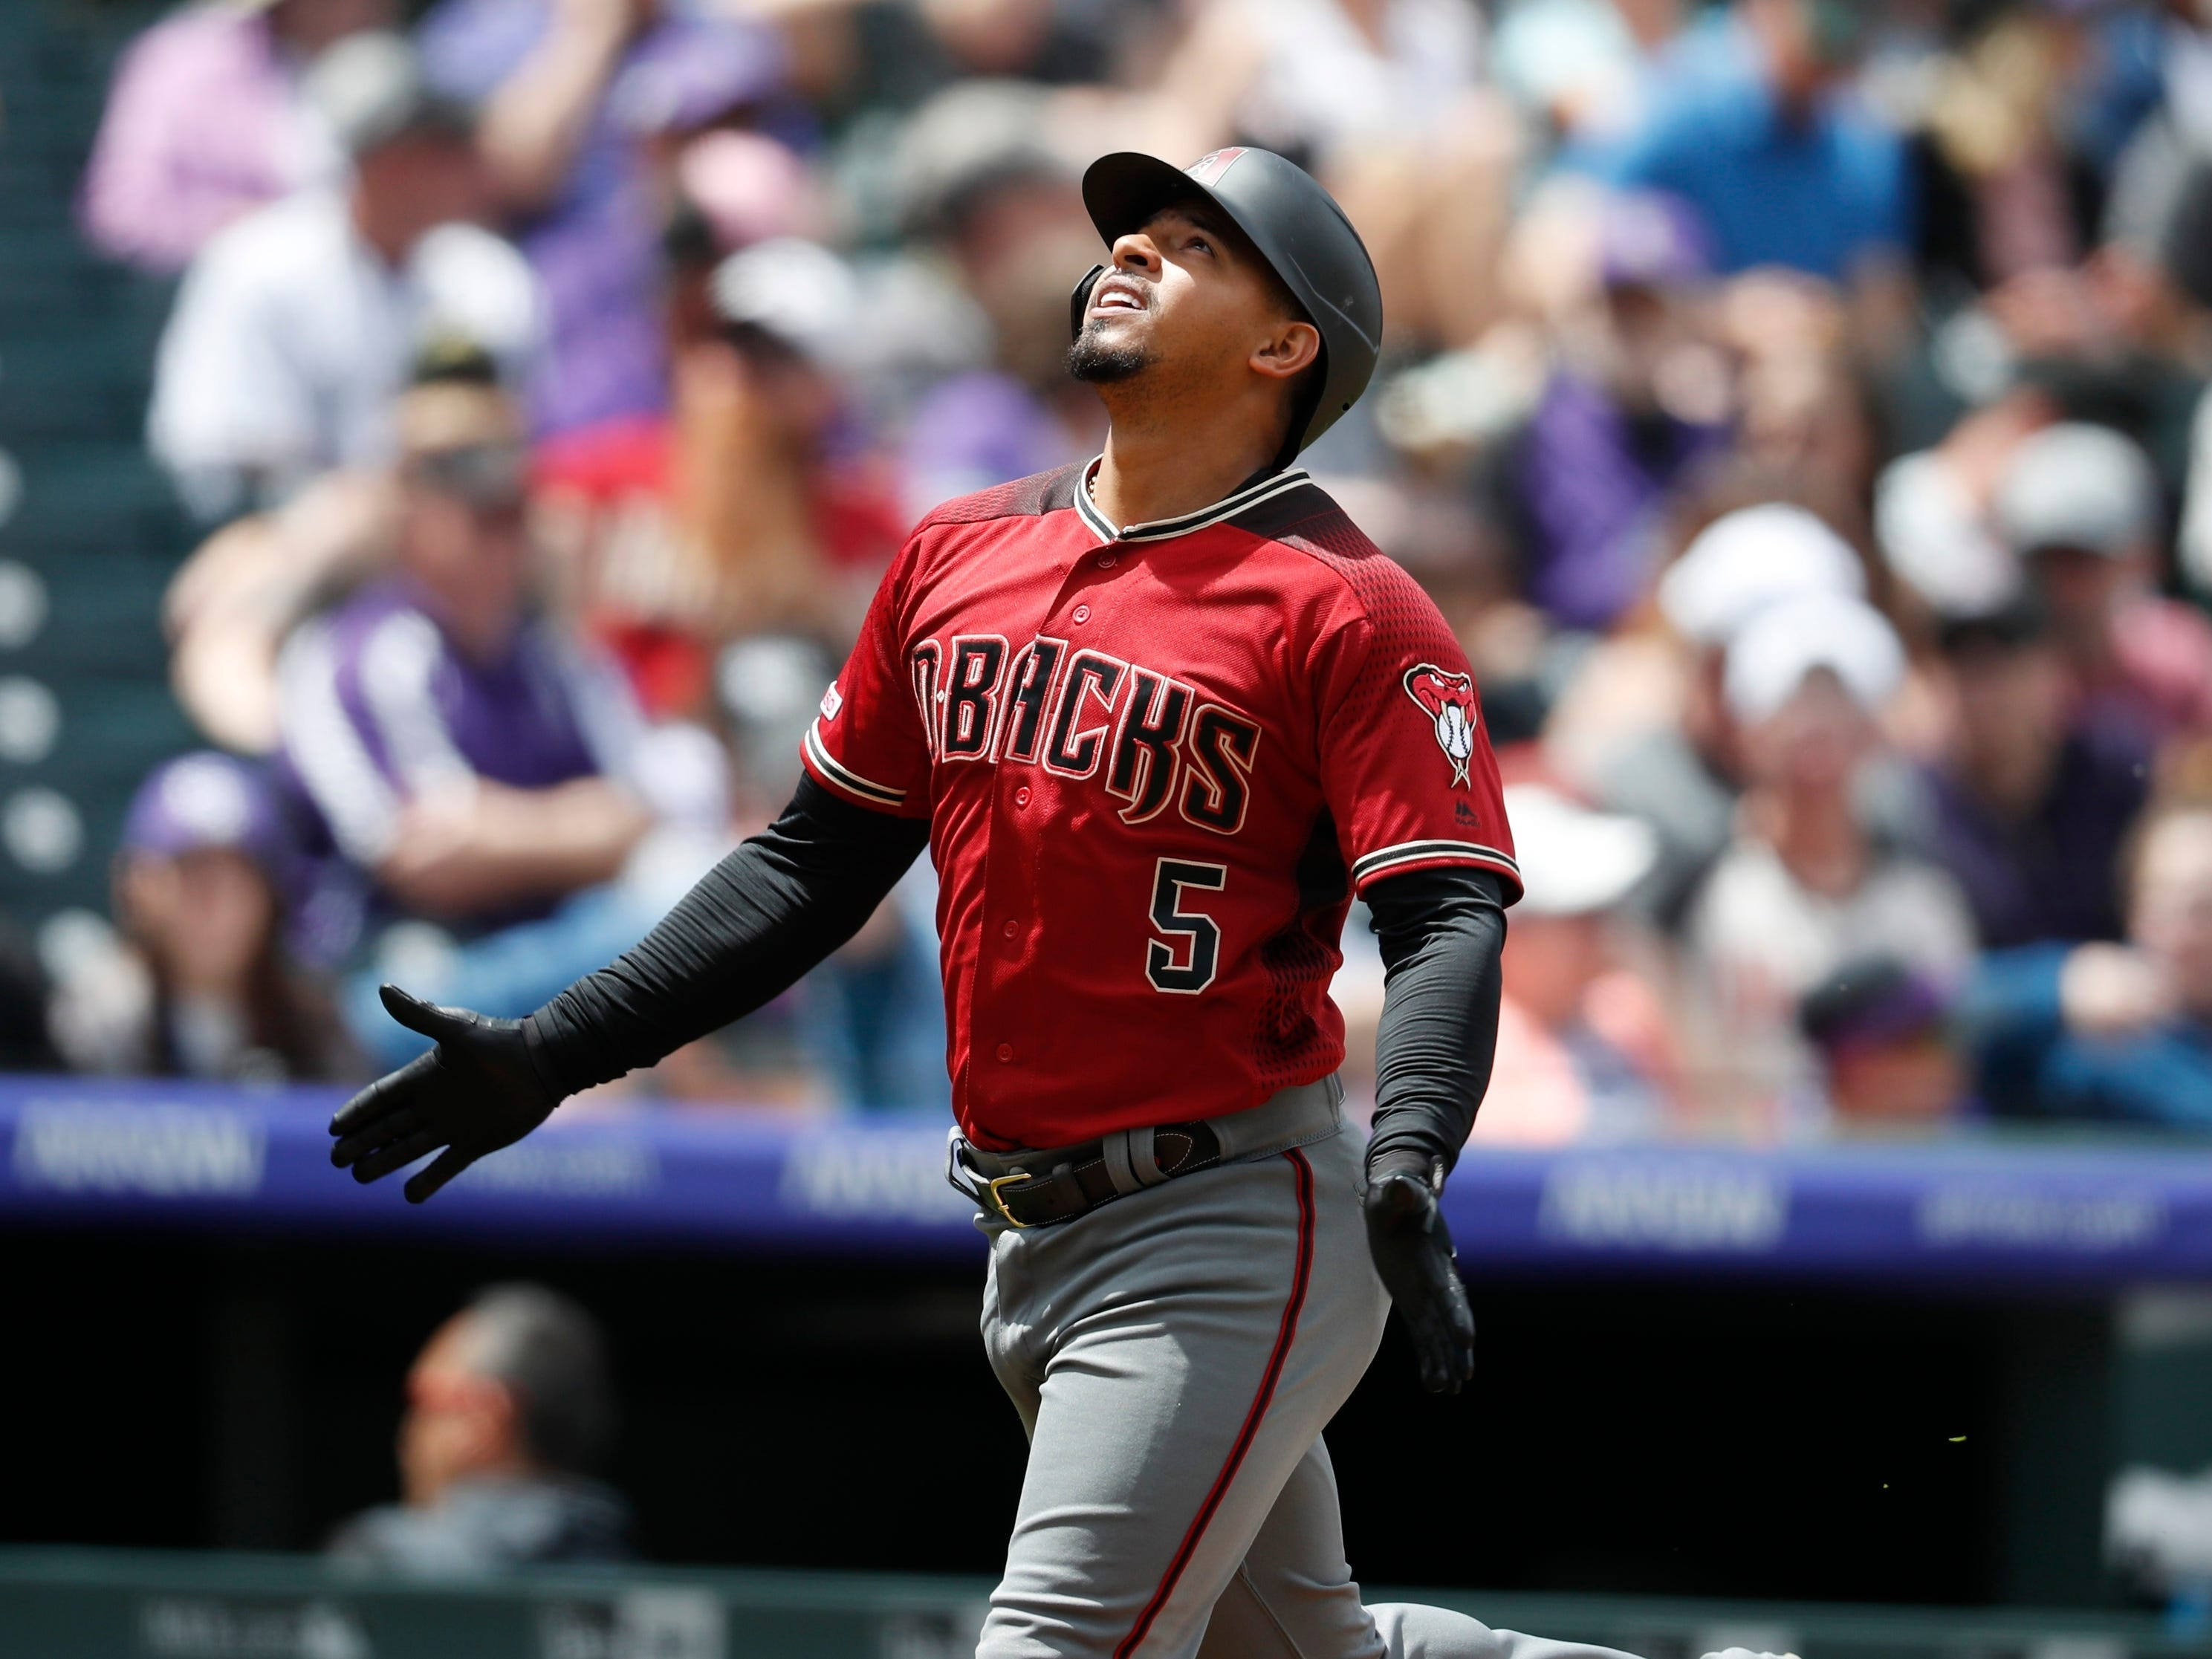 Arizona Diamondbacks' Eduardo Escobar gestures as he circles the bases after hitting a solo home run off Colorado Rockies starting pitcher German Marquez in the second inning of a baseball game Sunday, May 5, 2019, in Denver. (AP Photo/David Zalubowski)